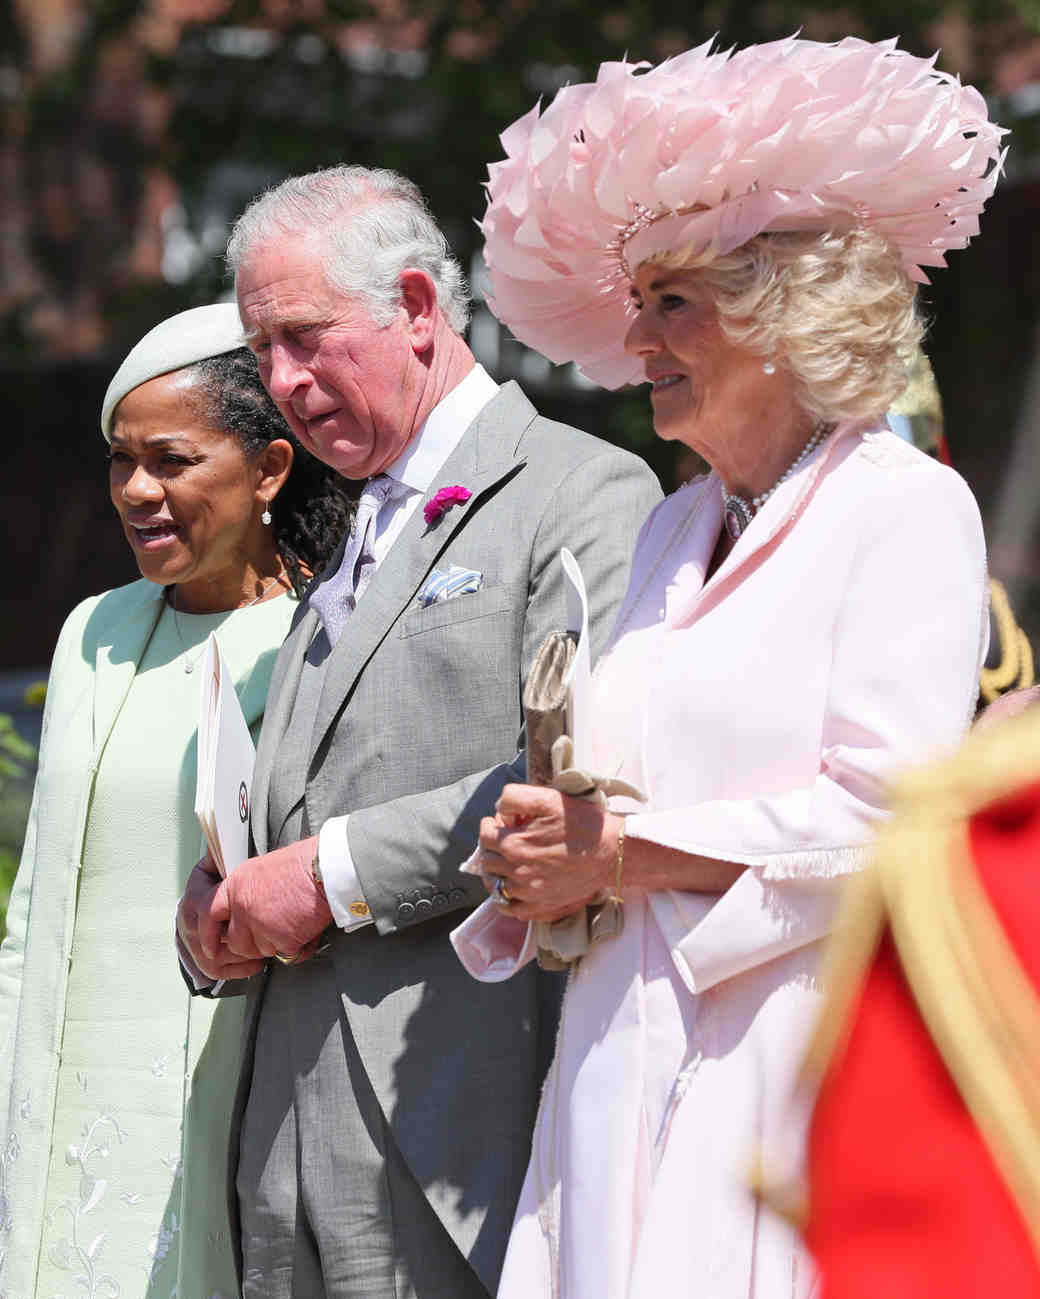 Prince Charles and Camilla Parker Bowles royal wedding 2018